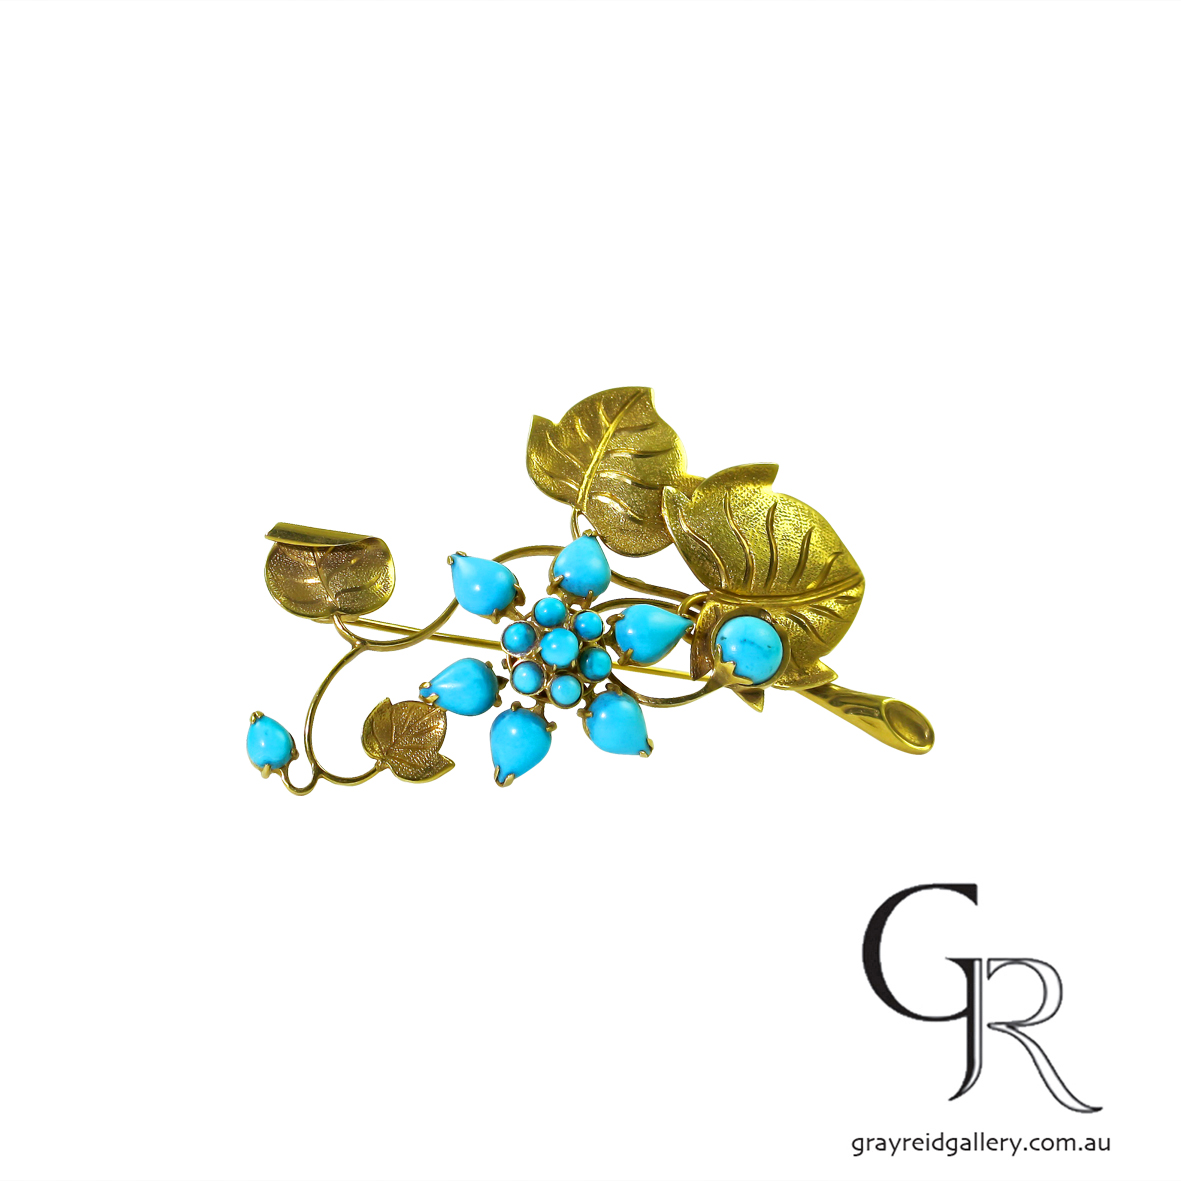 Vintage Gold Floral Brooch Set With Turquoise